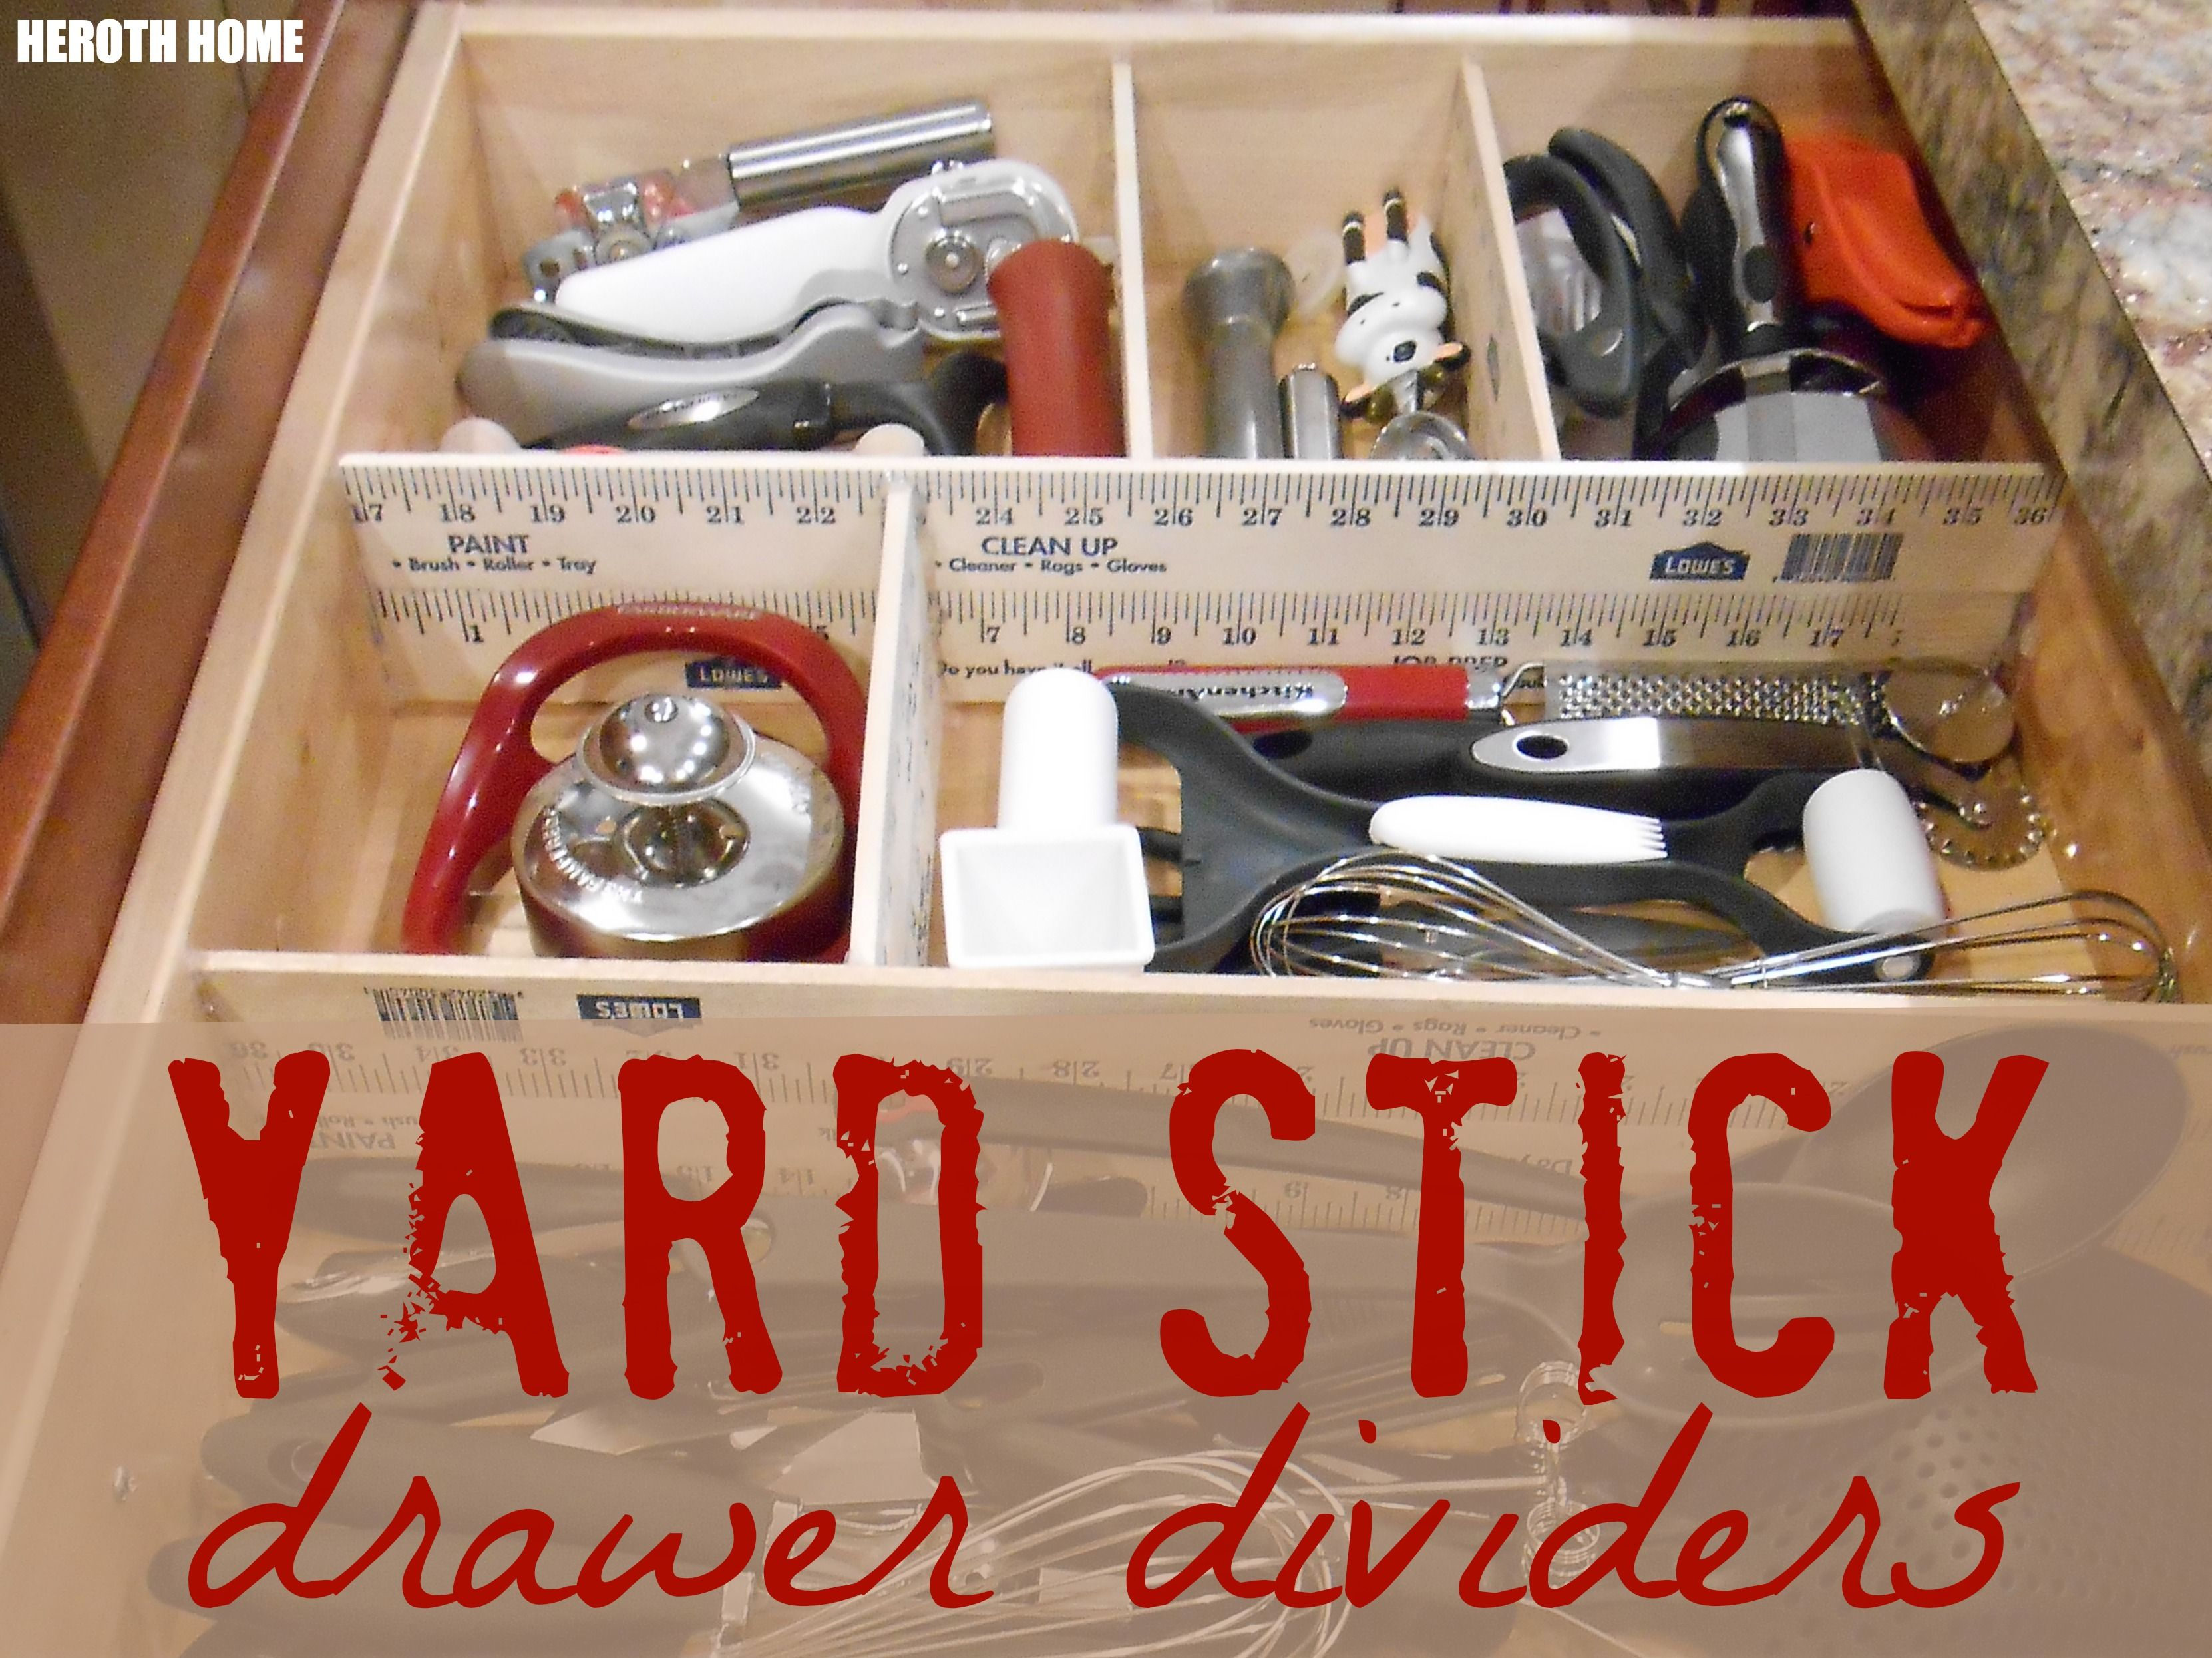 How to organize kitchen cabinets yard stick drawer dividers